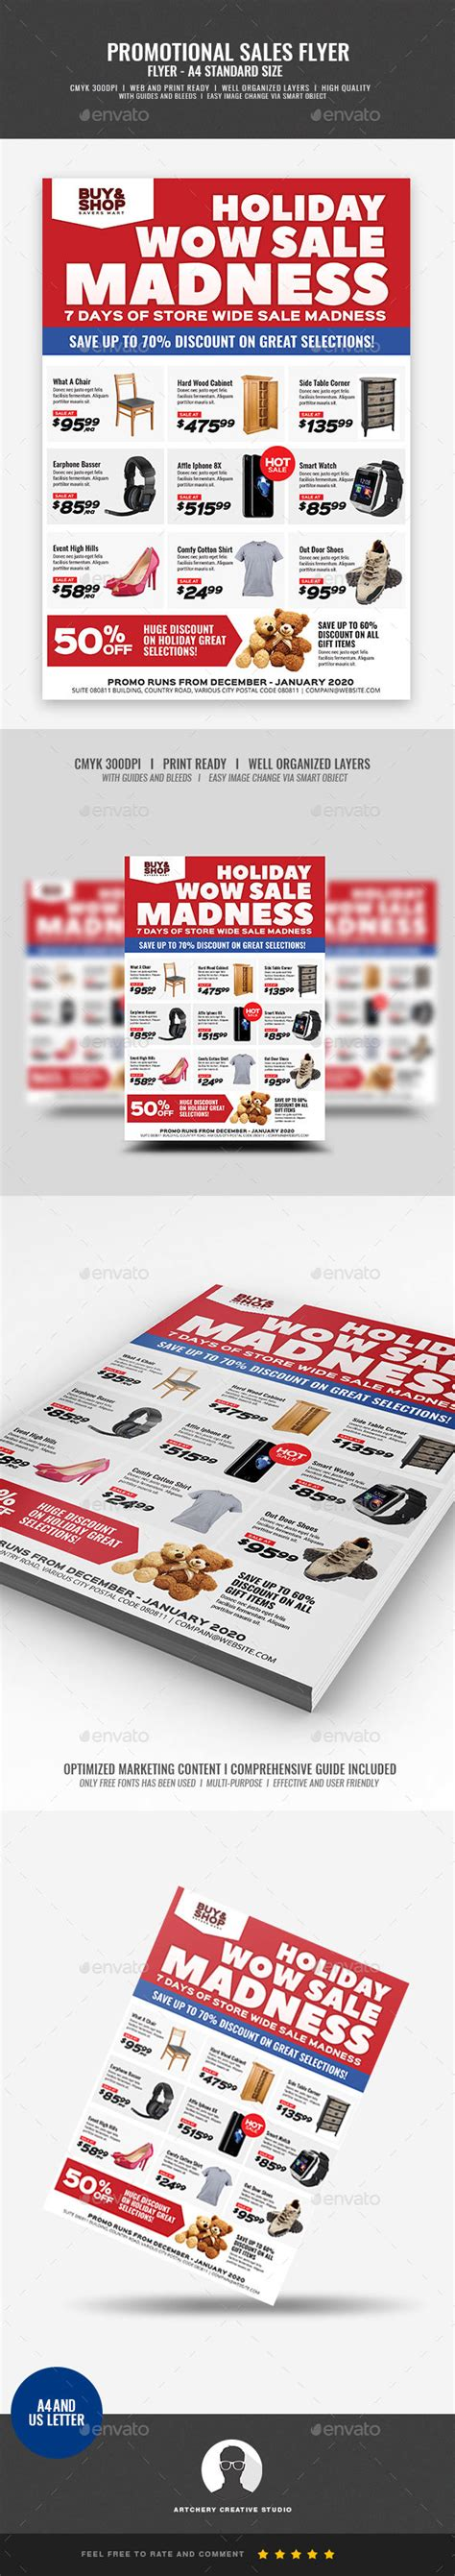 Product Sale And Promotional Flyer By Artchery Graphicriver Product Sale Flyer Template